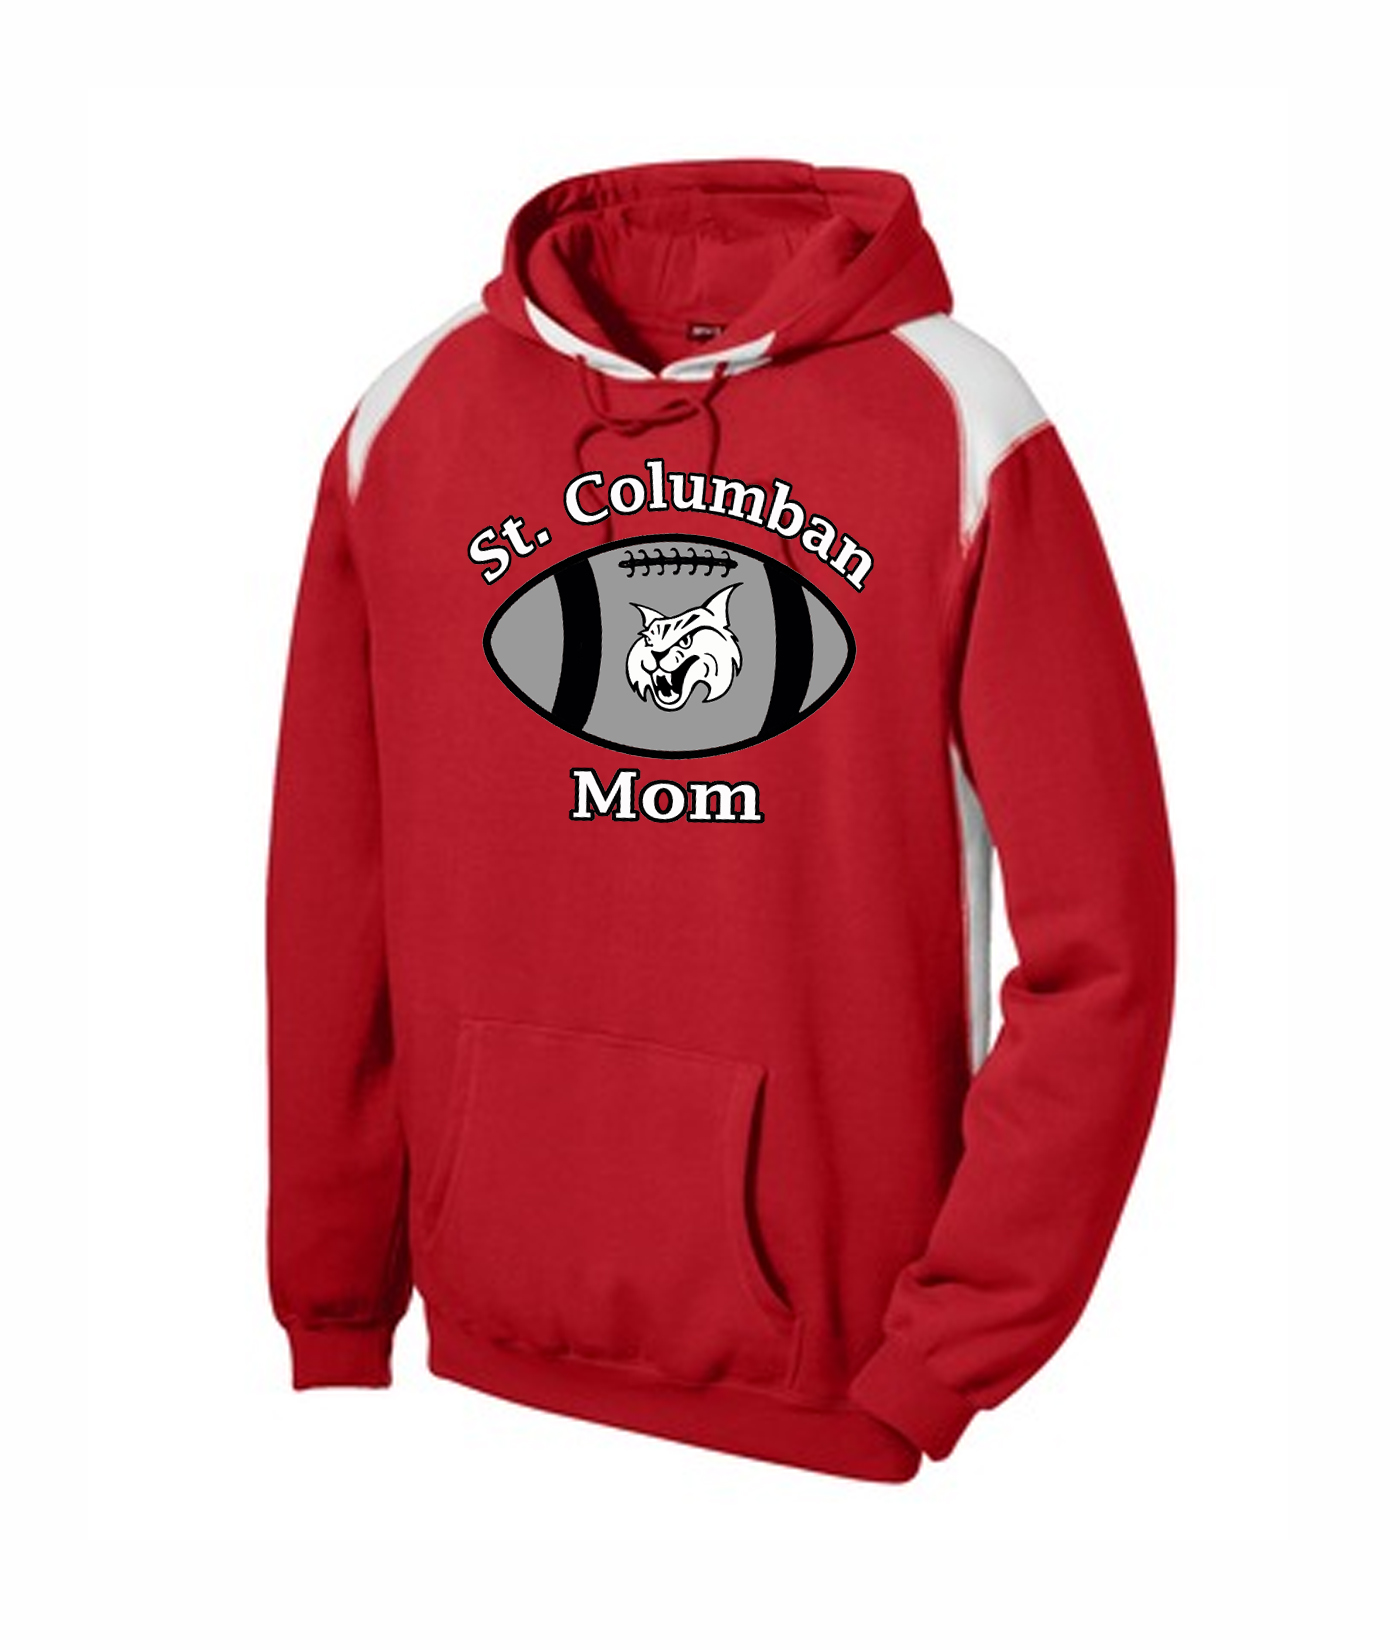 St. Columban Football Mom Red Multi Color Hoodie